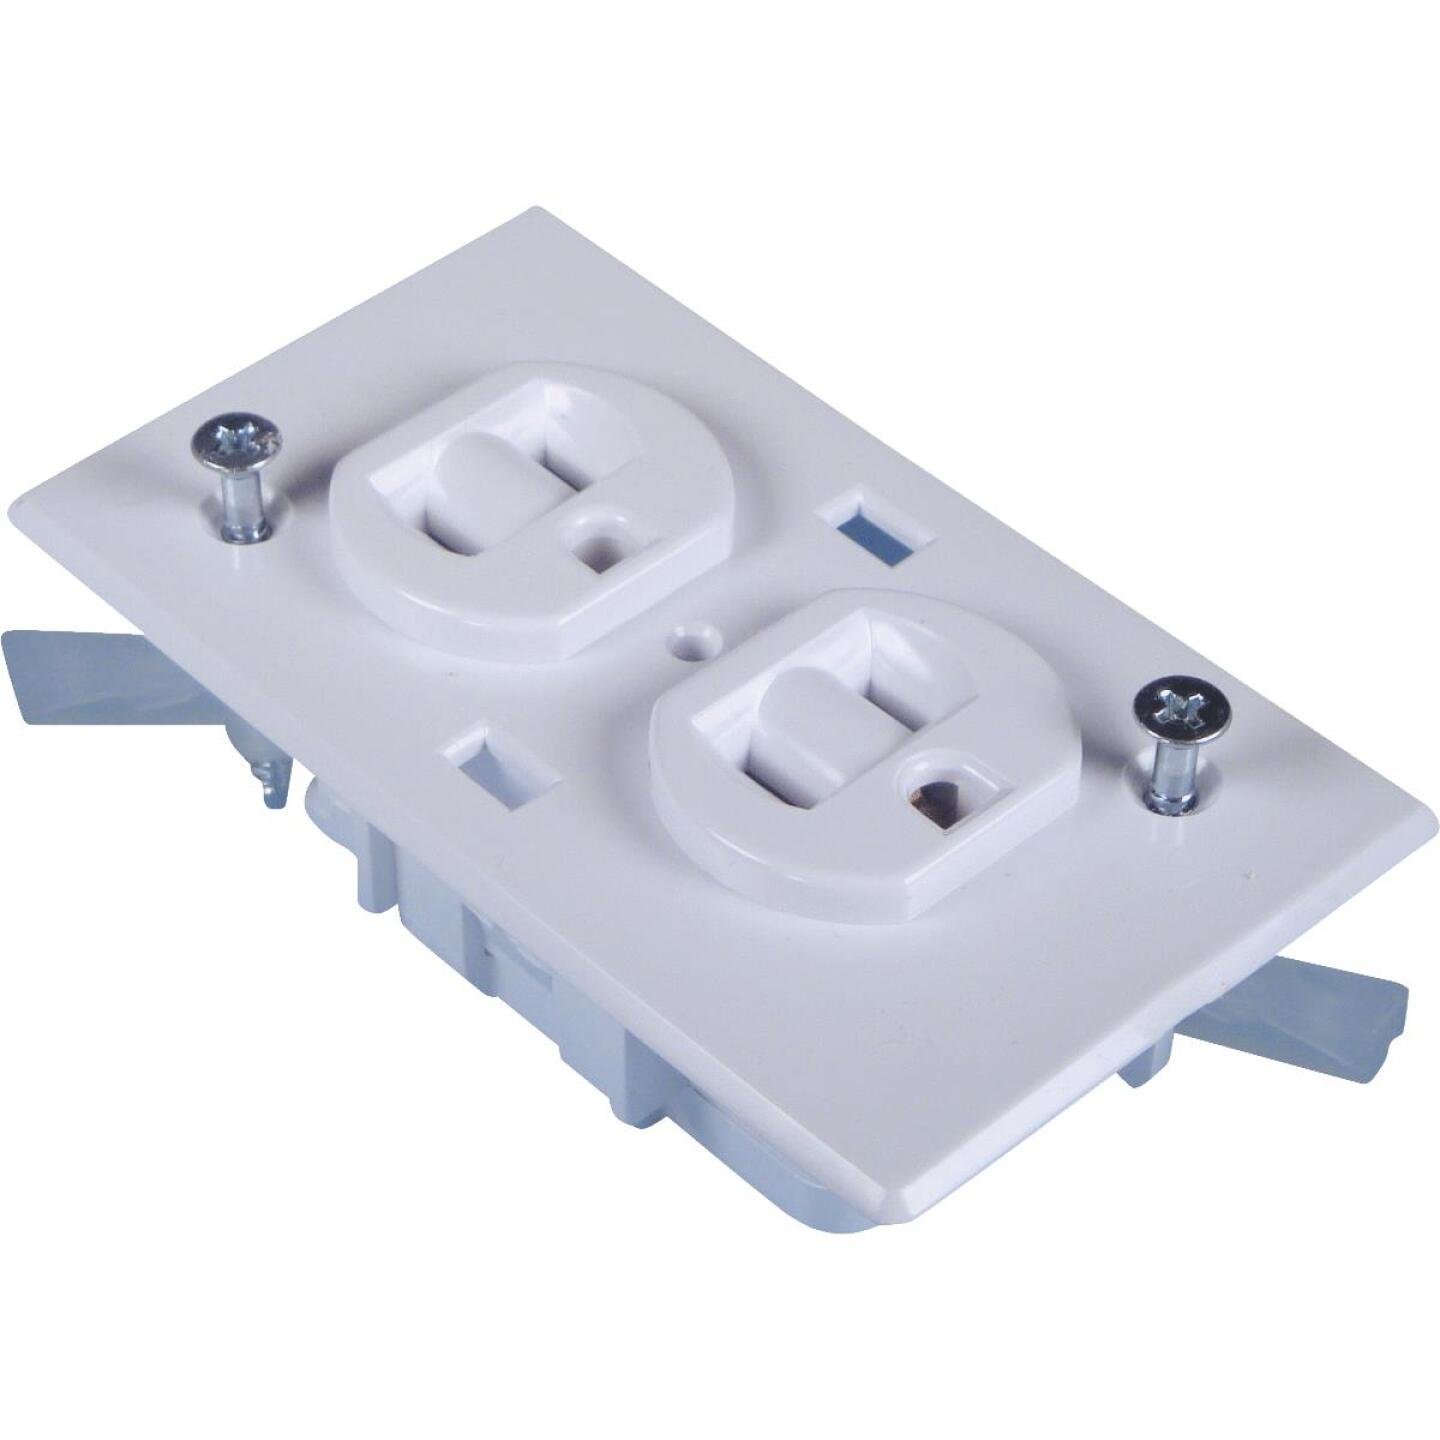 United States Hardware 15A White Conventional Mobile Home 5-15R Duplex Outlet Image 1